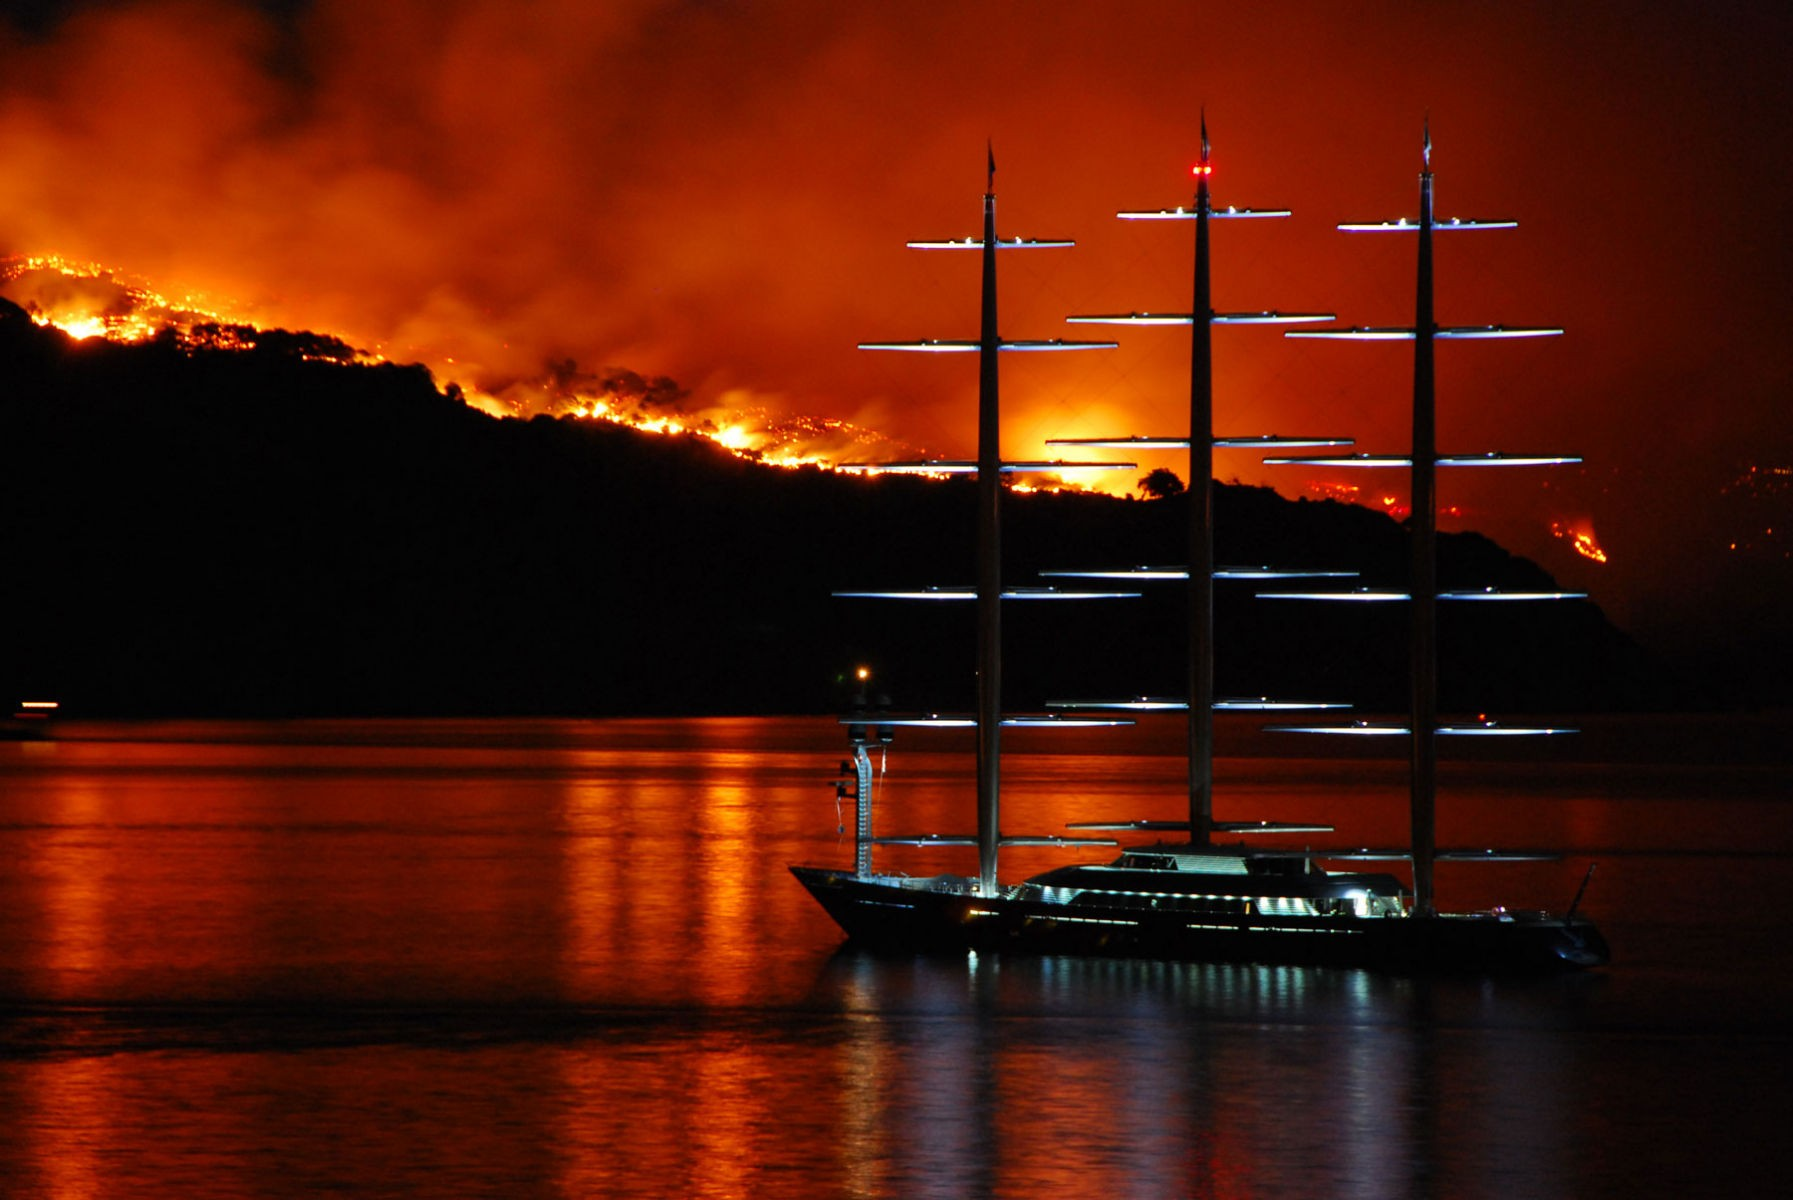 Maltese Falcon And the Angel Island Fire